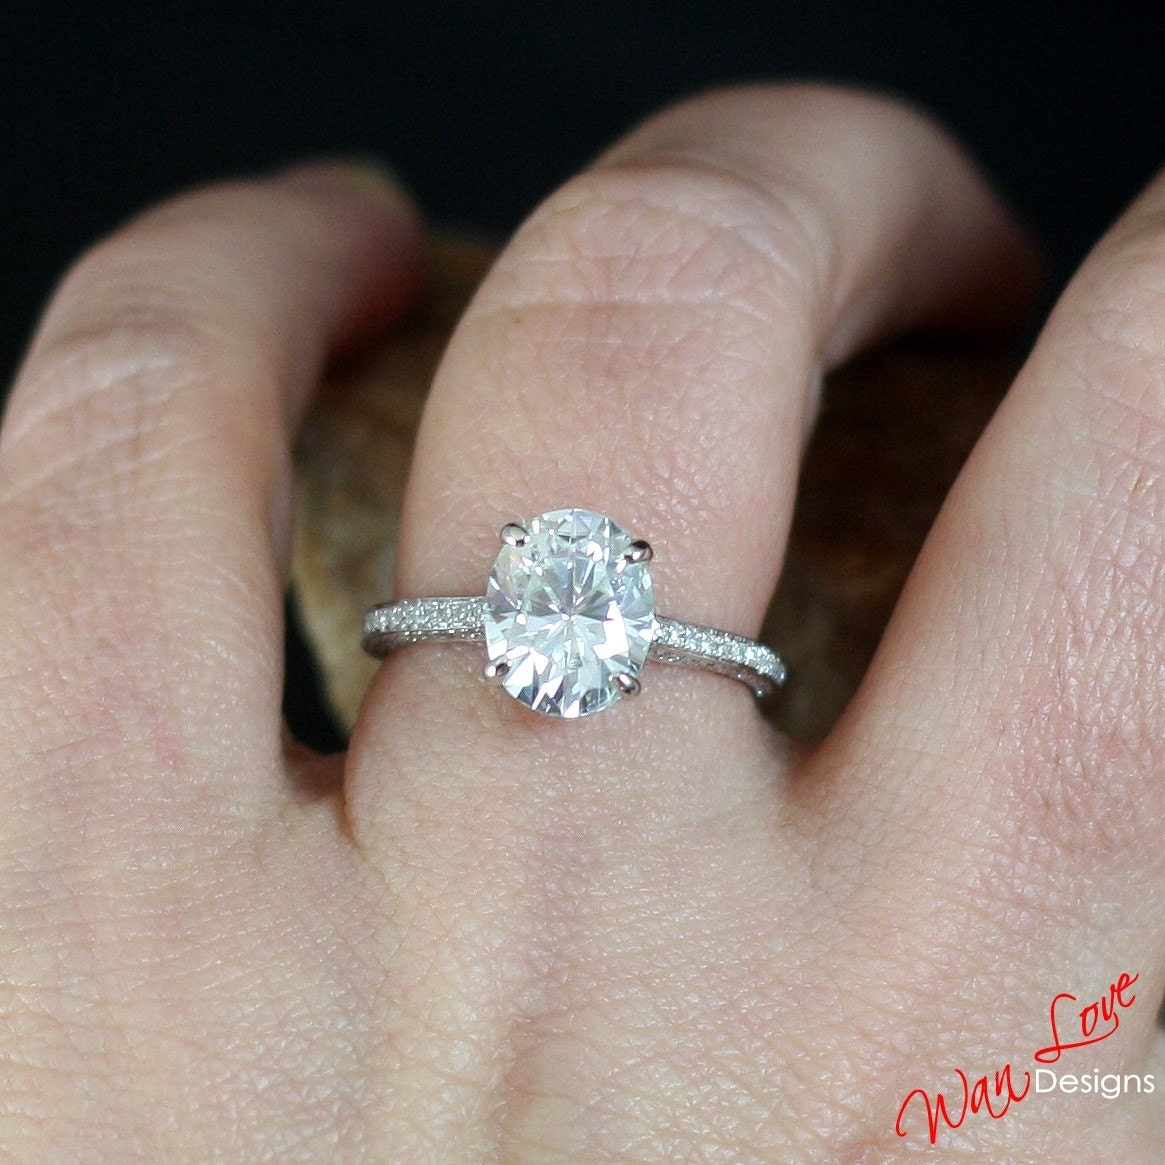 basket ring oval cut platinum ct purchased french encrusted diamond engagement with in rings recently